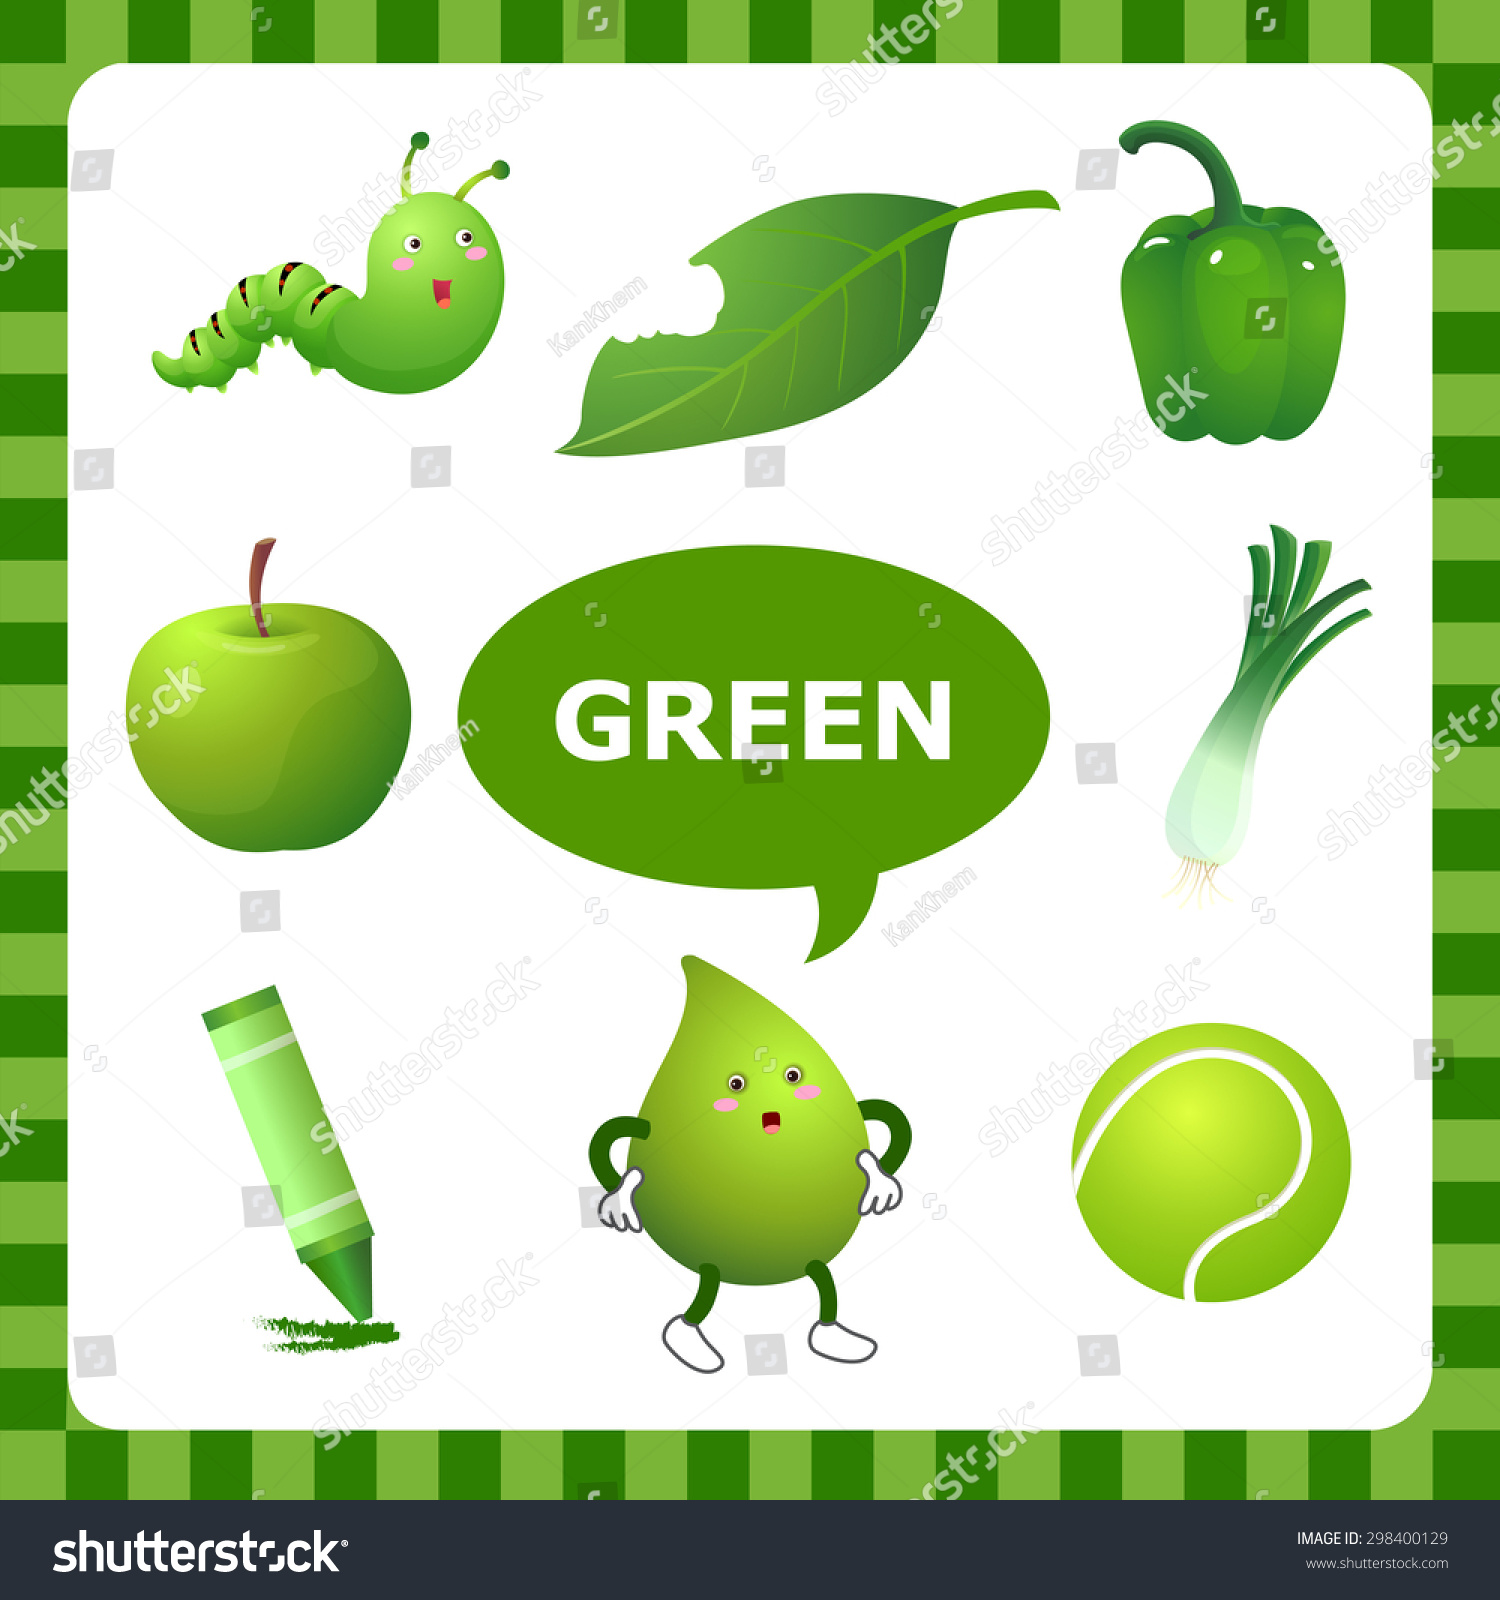 Learn Color Green Things That Green Stock Vector